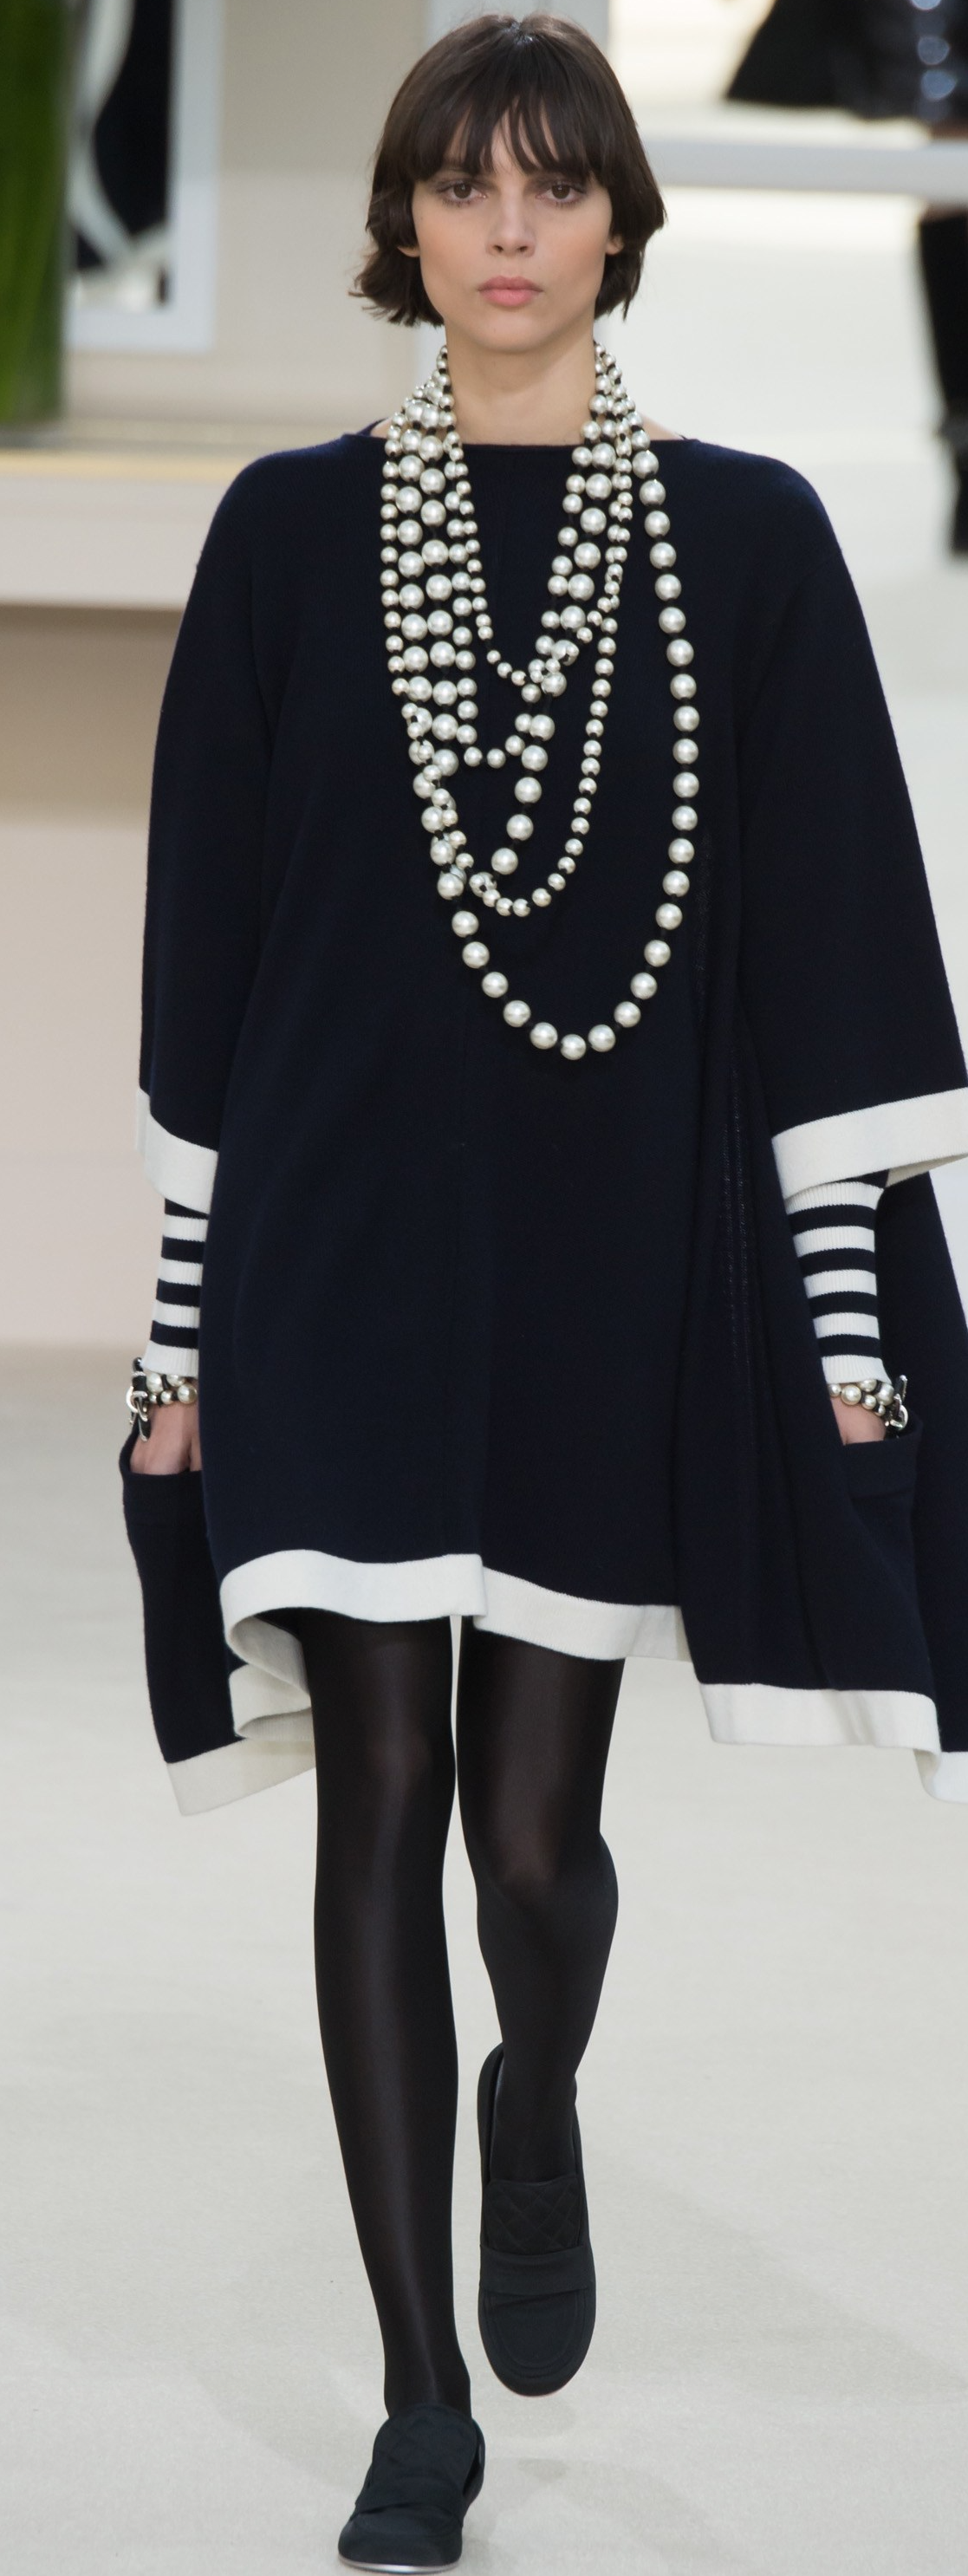 Chanel ~ Resort Black + White Dress 2016 …